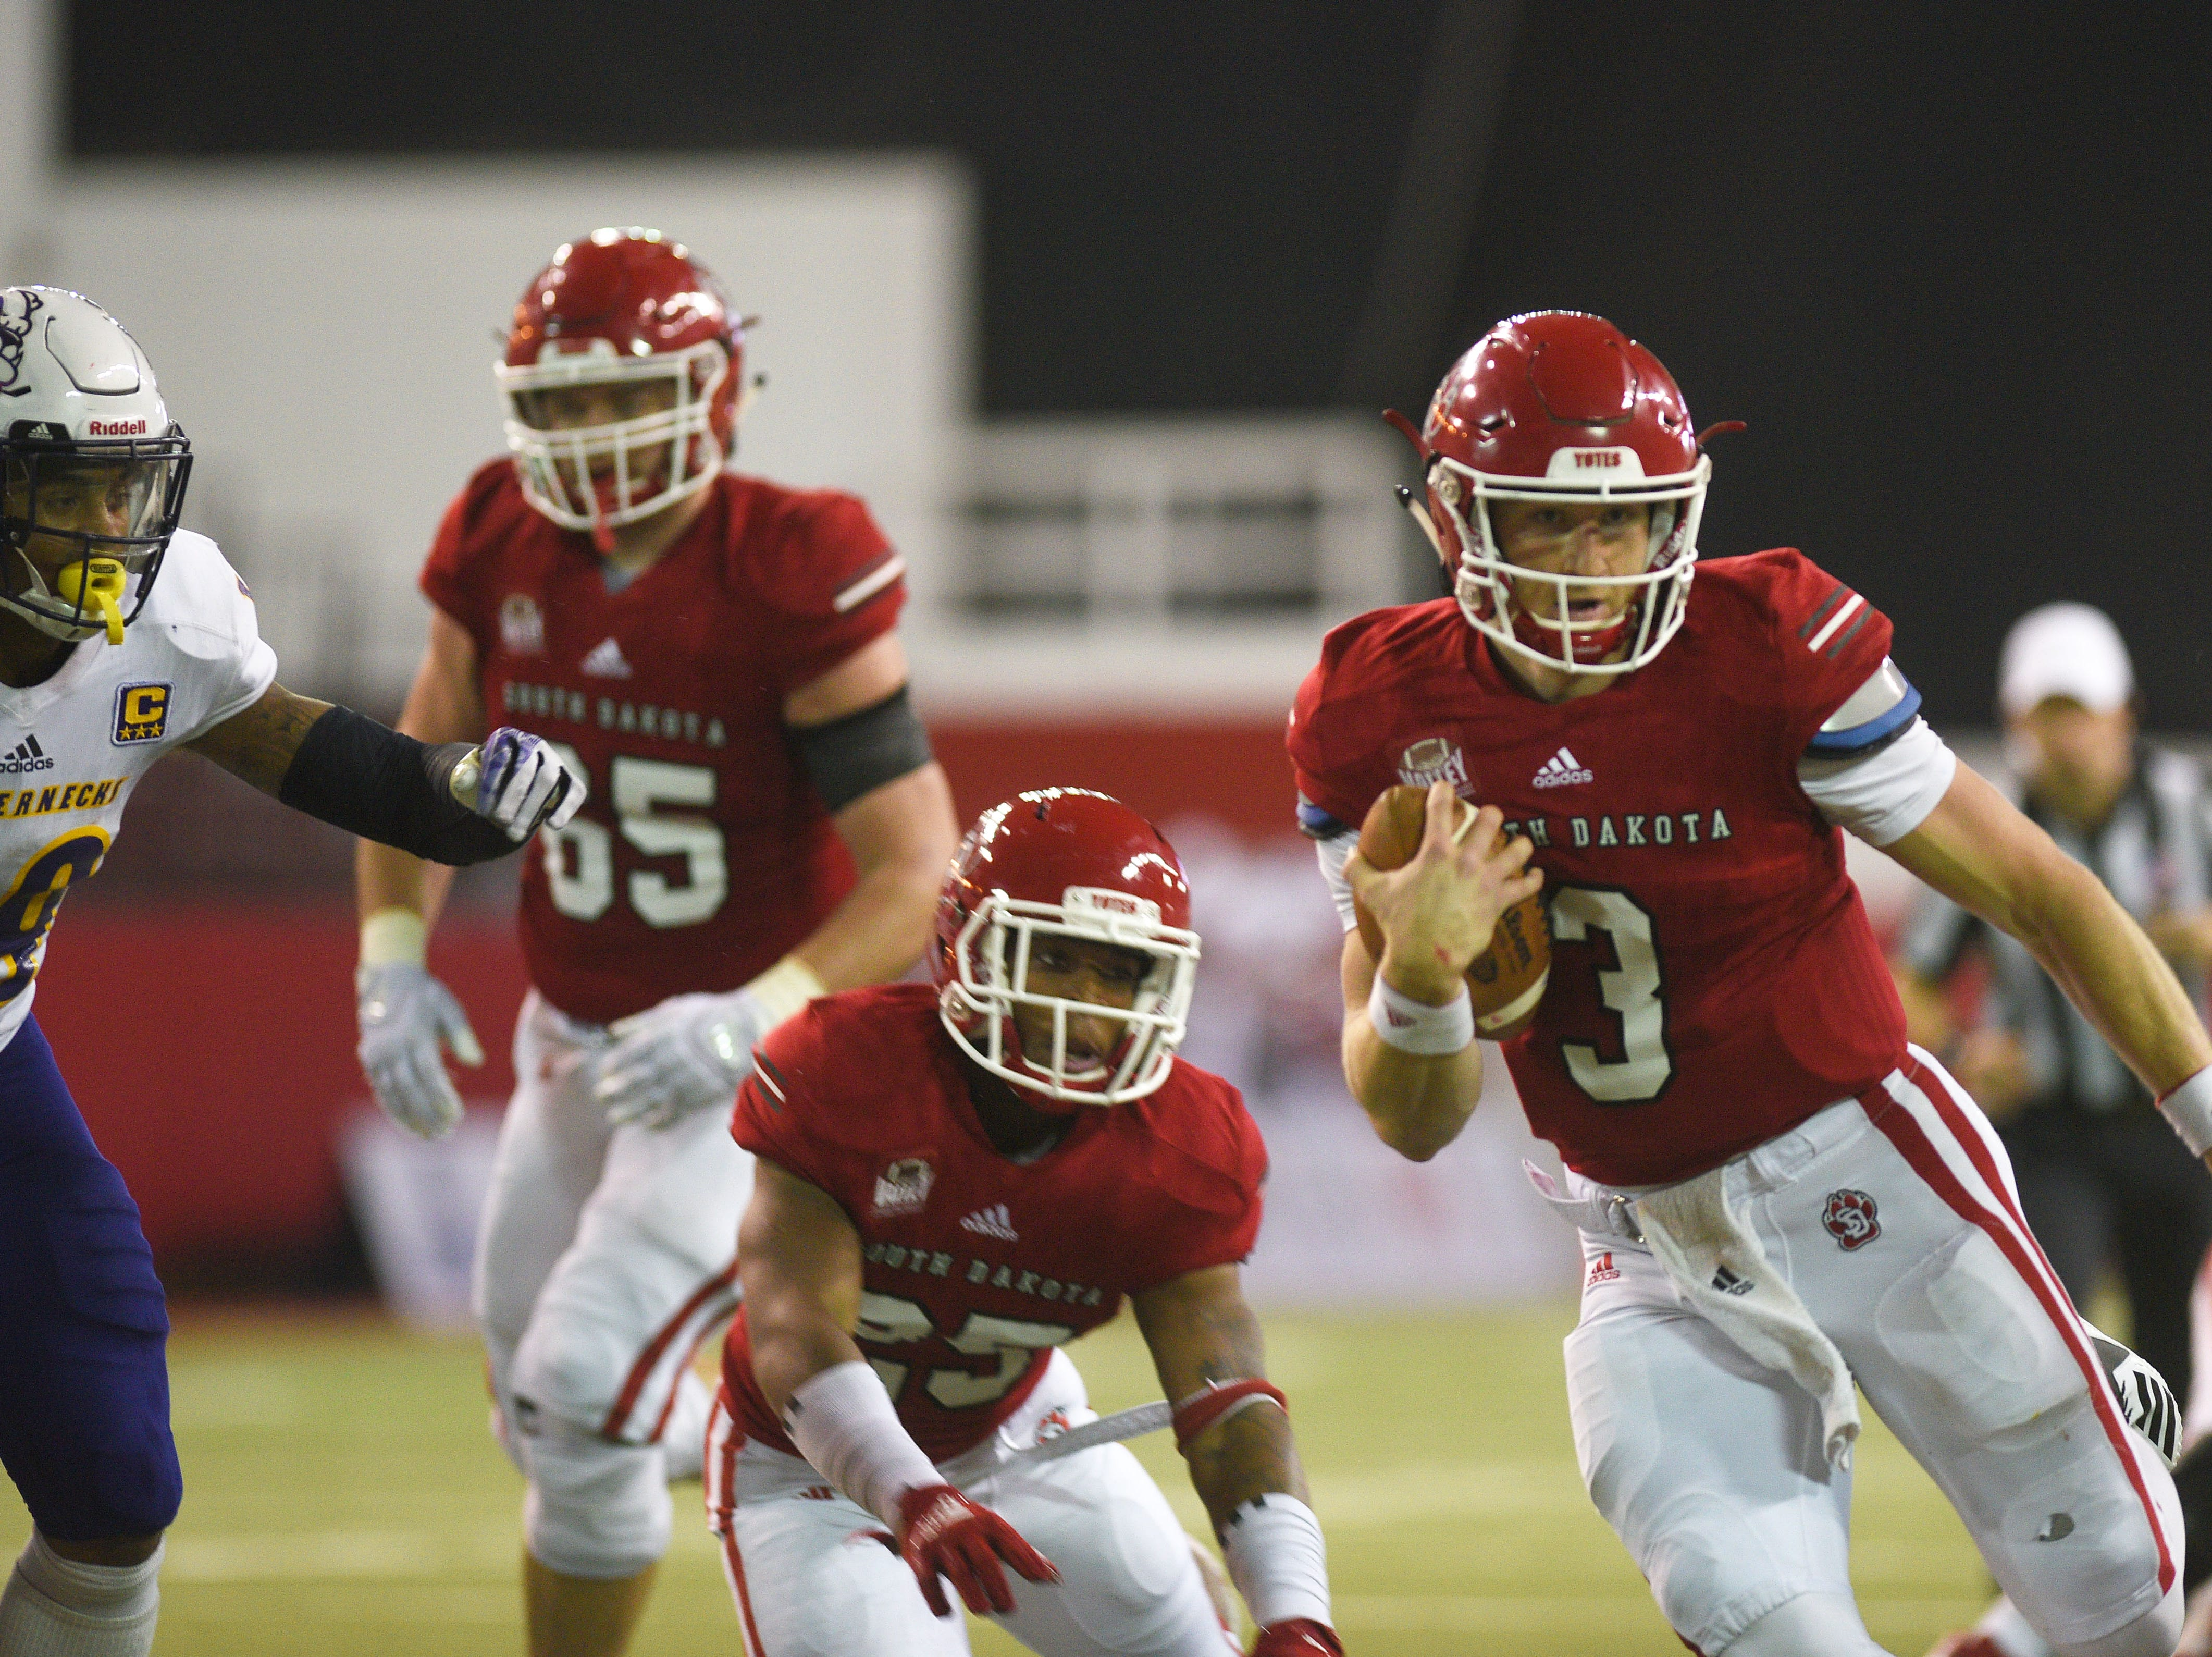 USD's Austin Simmons goes against against Western Illinois defense during the game Saturday, Nov. 10, at the DakotaDome in Vermillion.